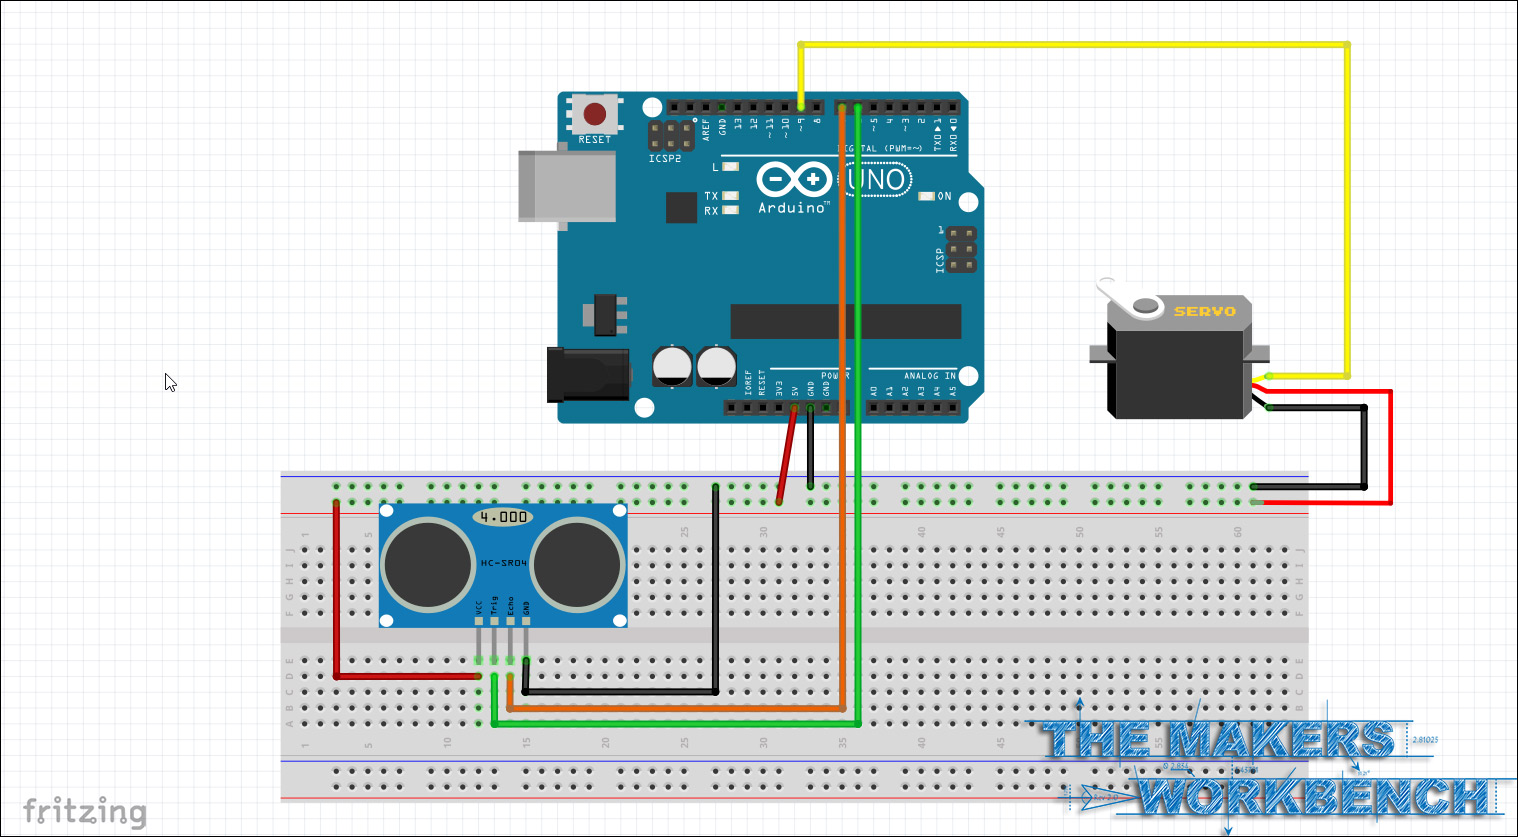 Triggering a servo using an HC-SR04 distance sensor and an Arduino